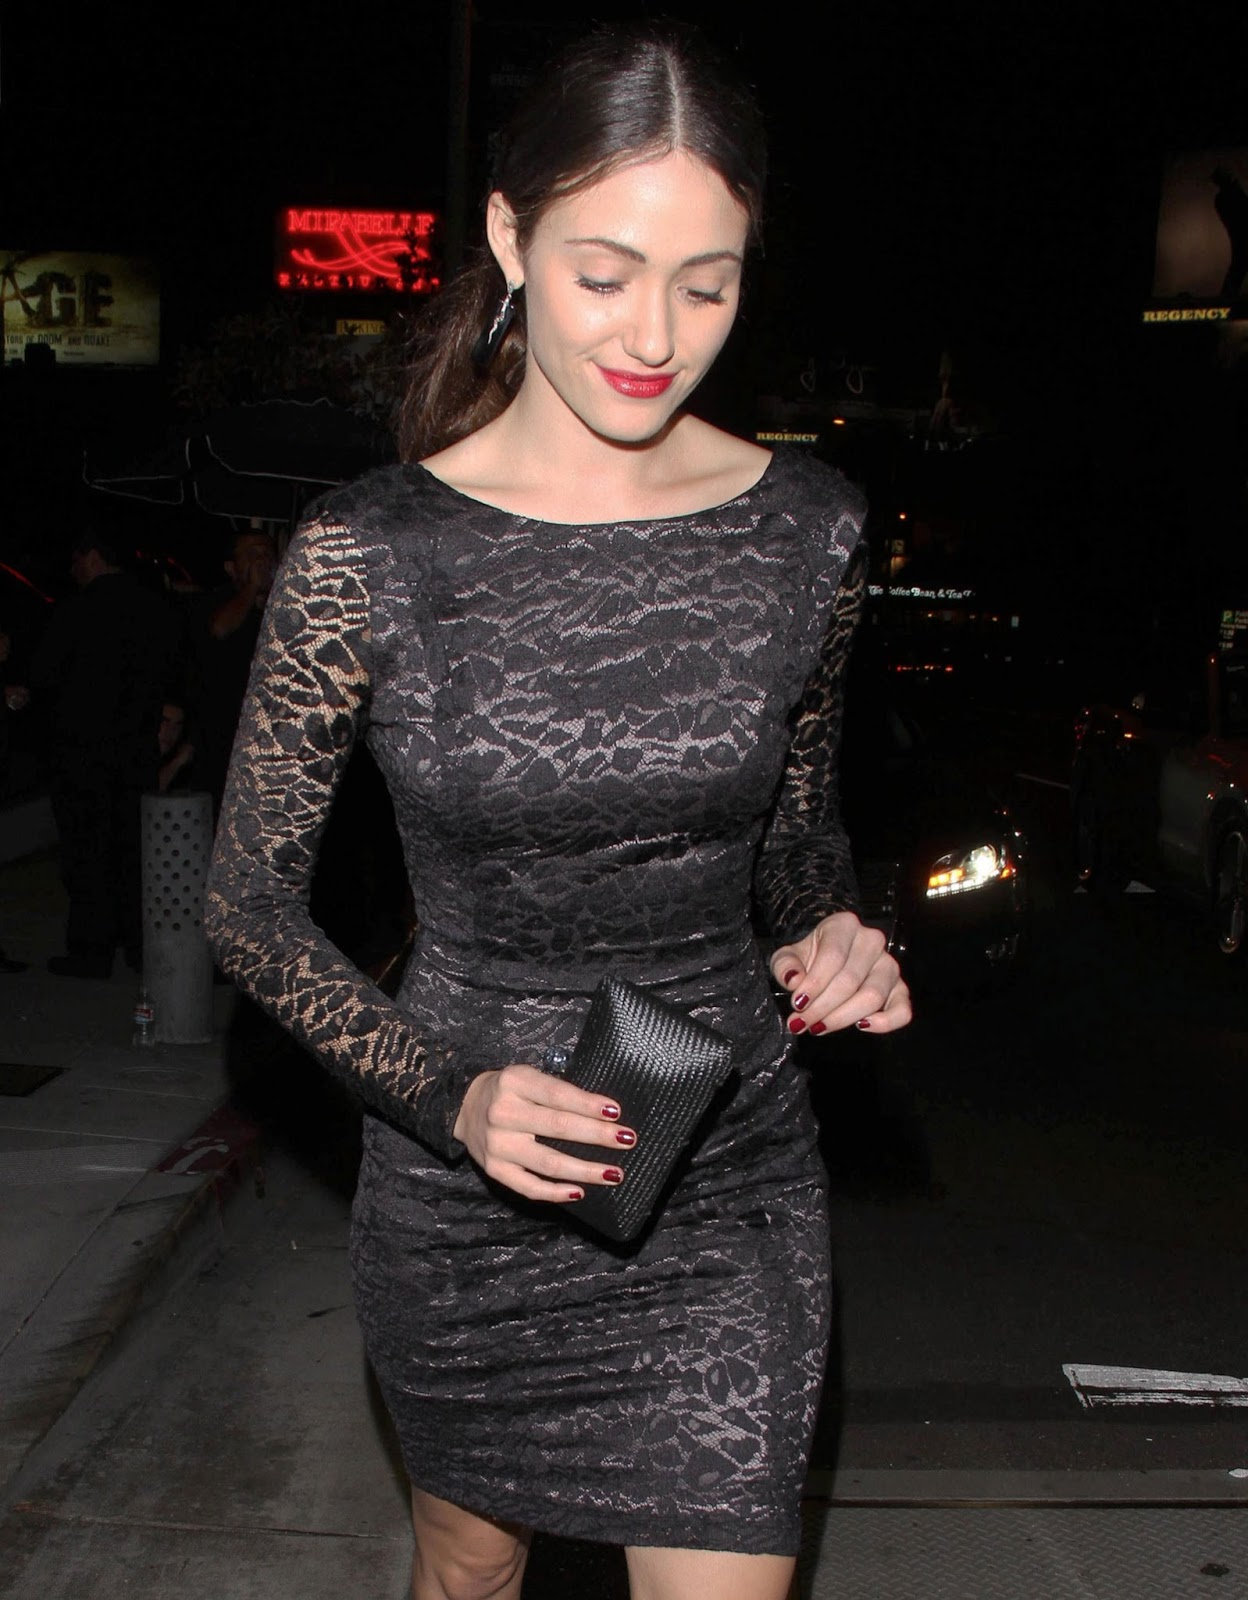 Emmy Rossum at The Eveleigh Restaurant